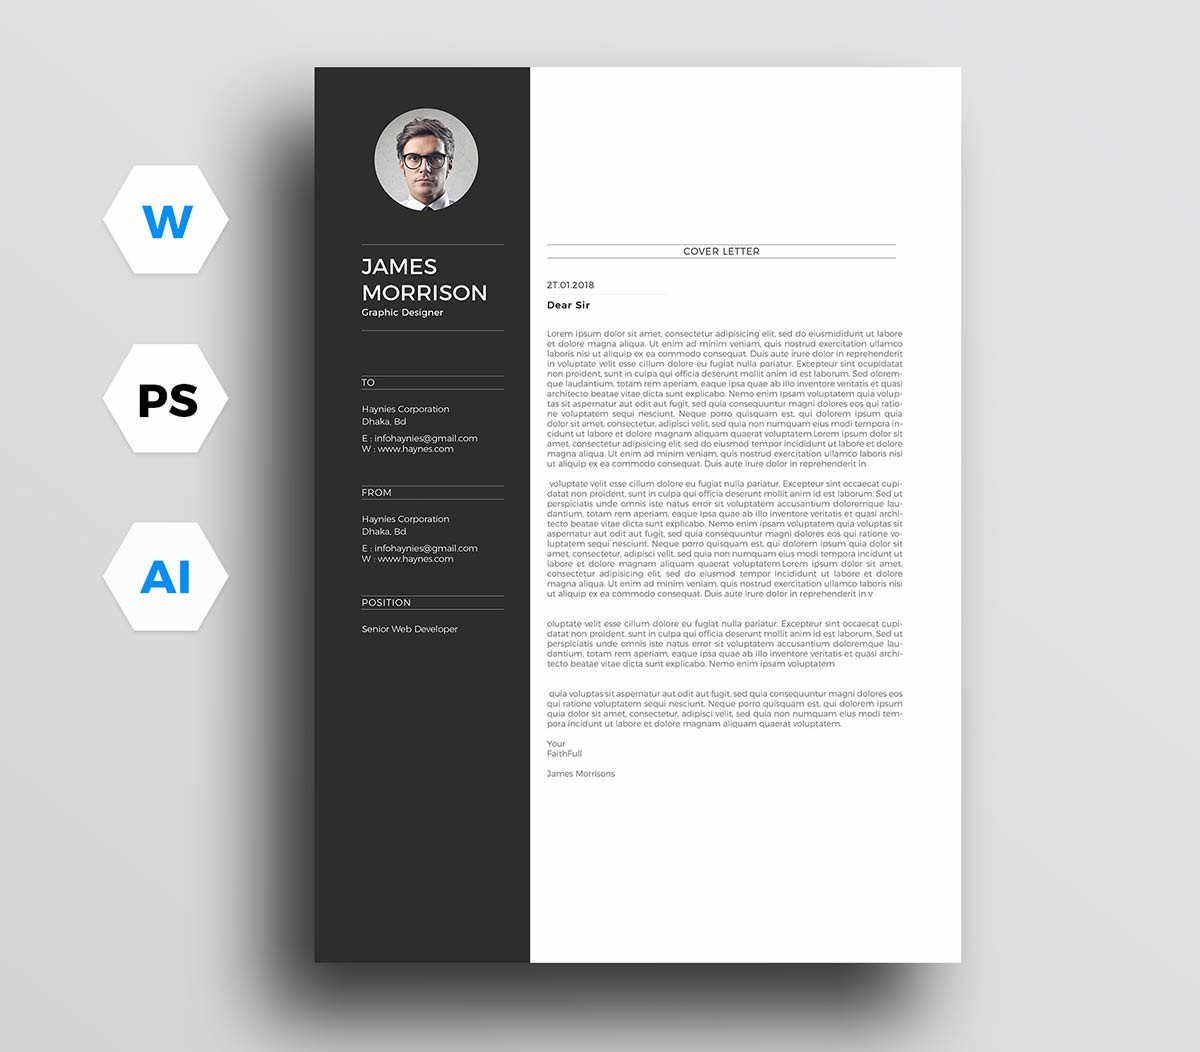 cover letter templates for microsoft word free resume format template writer vancouver Resume Resume Cover Letter Format Free Download